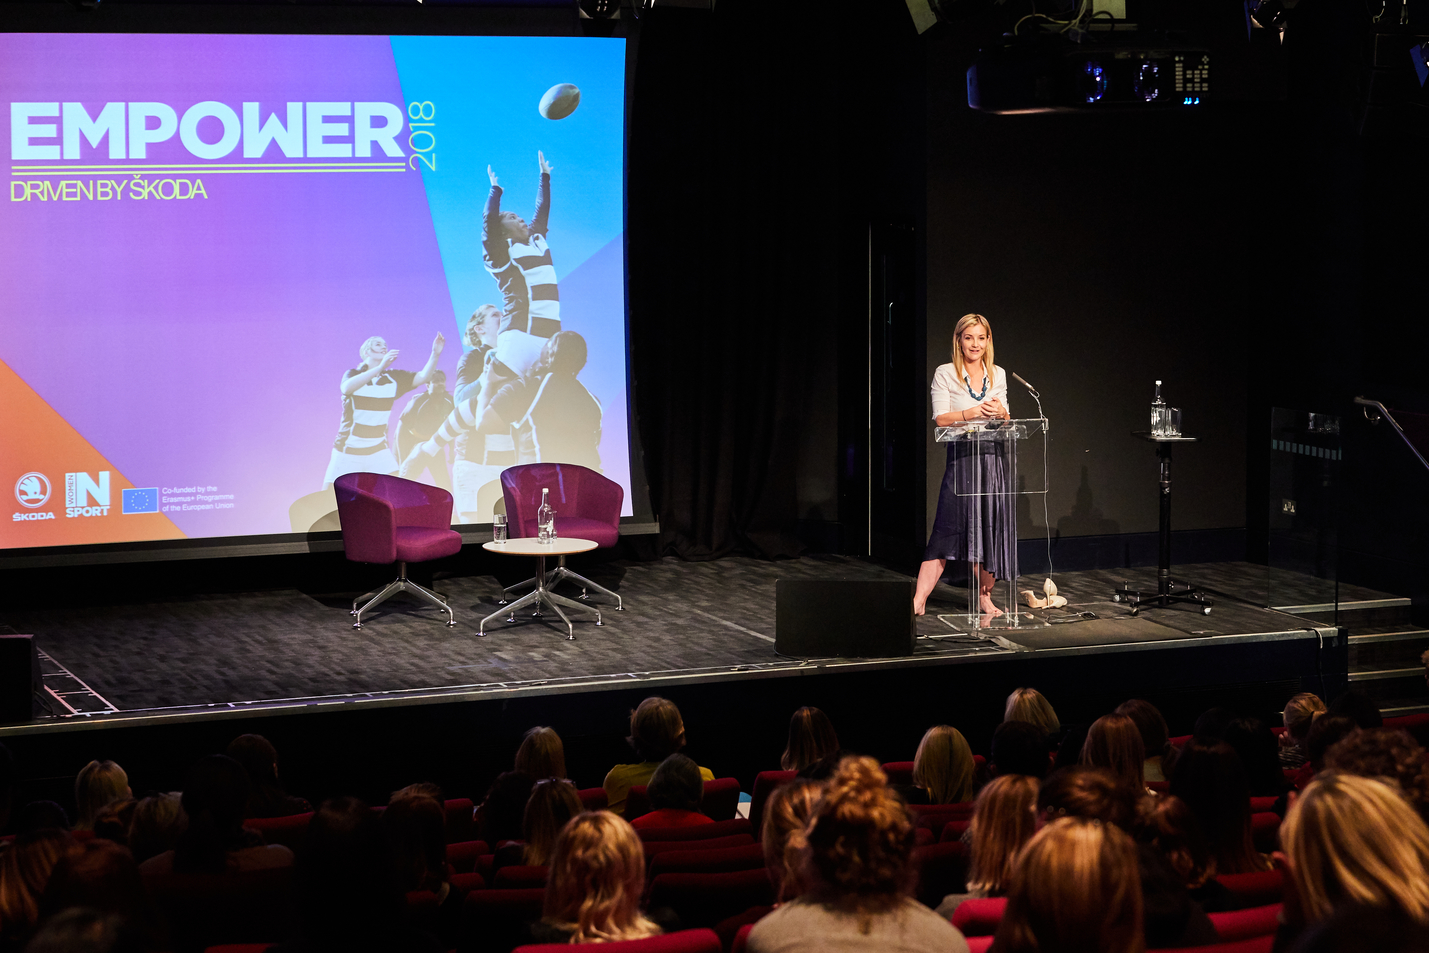 Helen Skelton presenting the final session at the Empower Conference